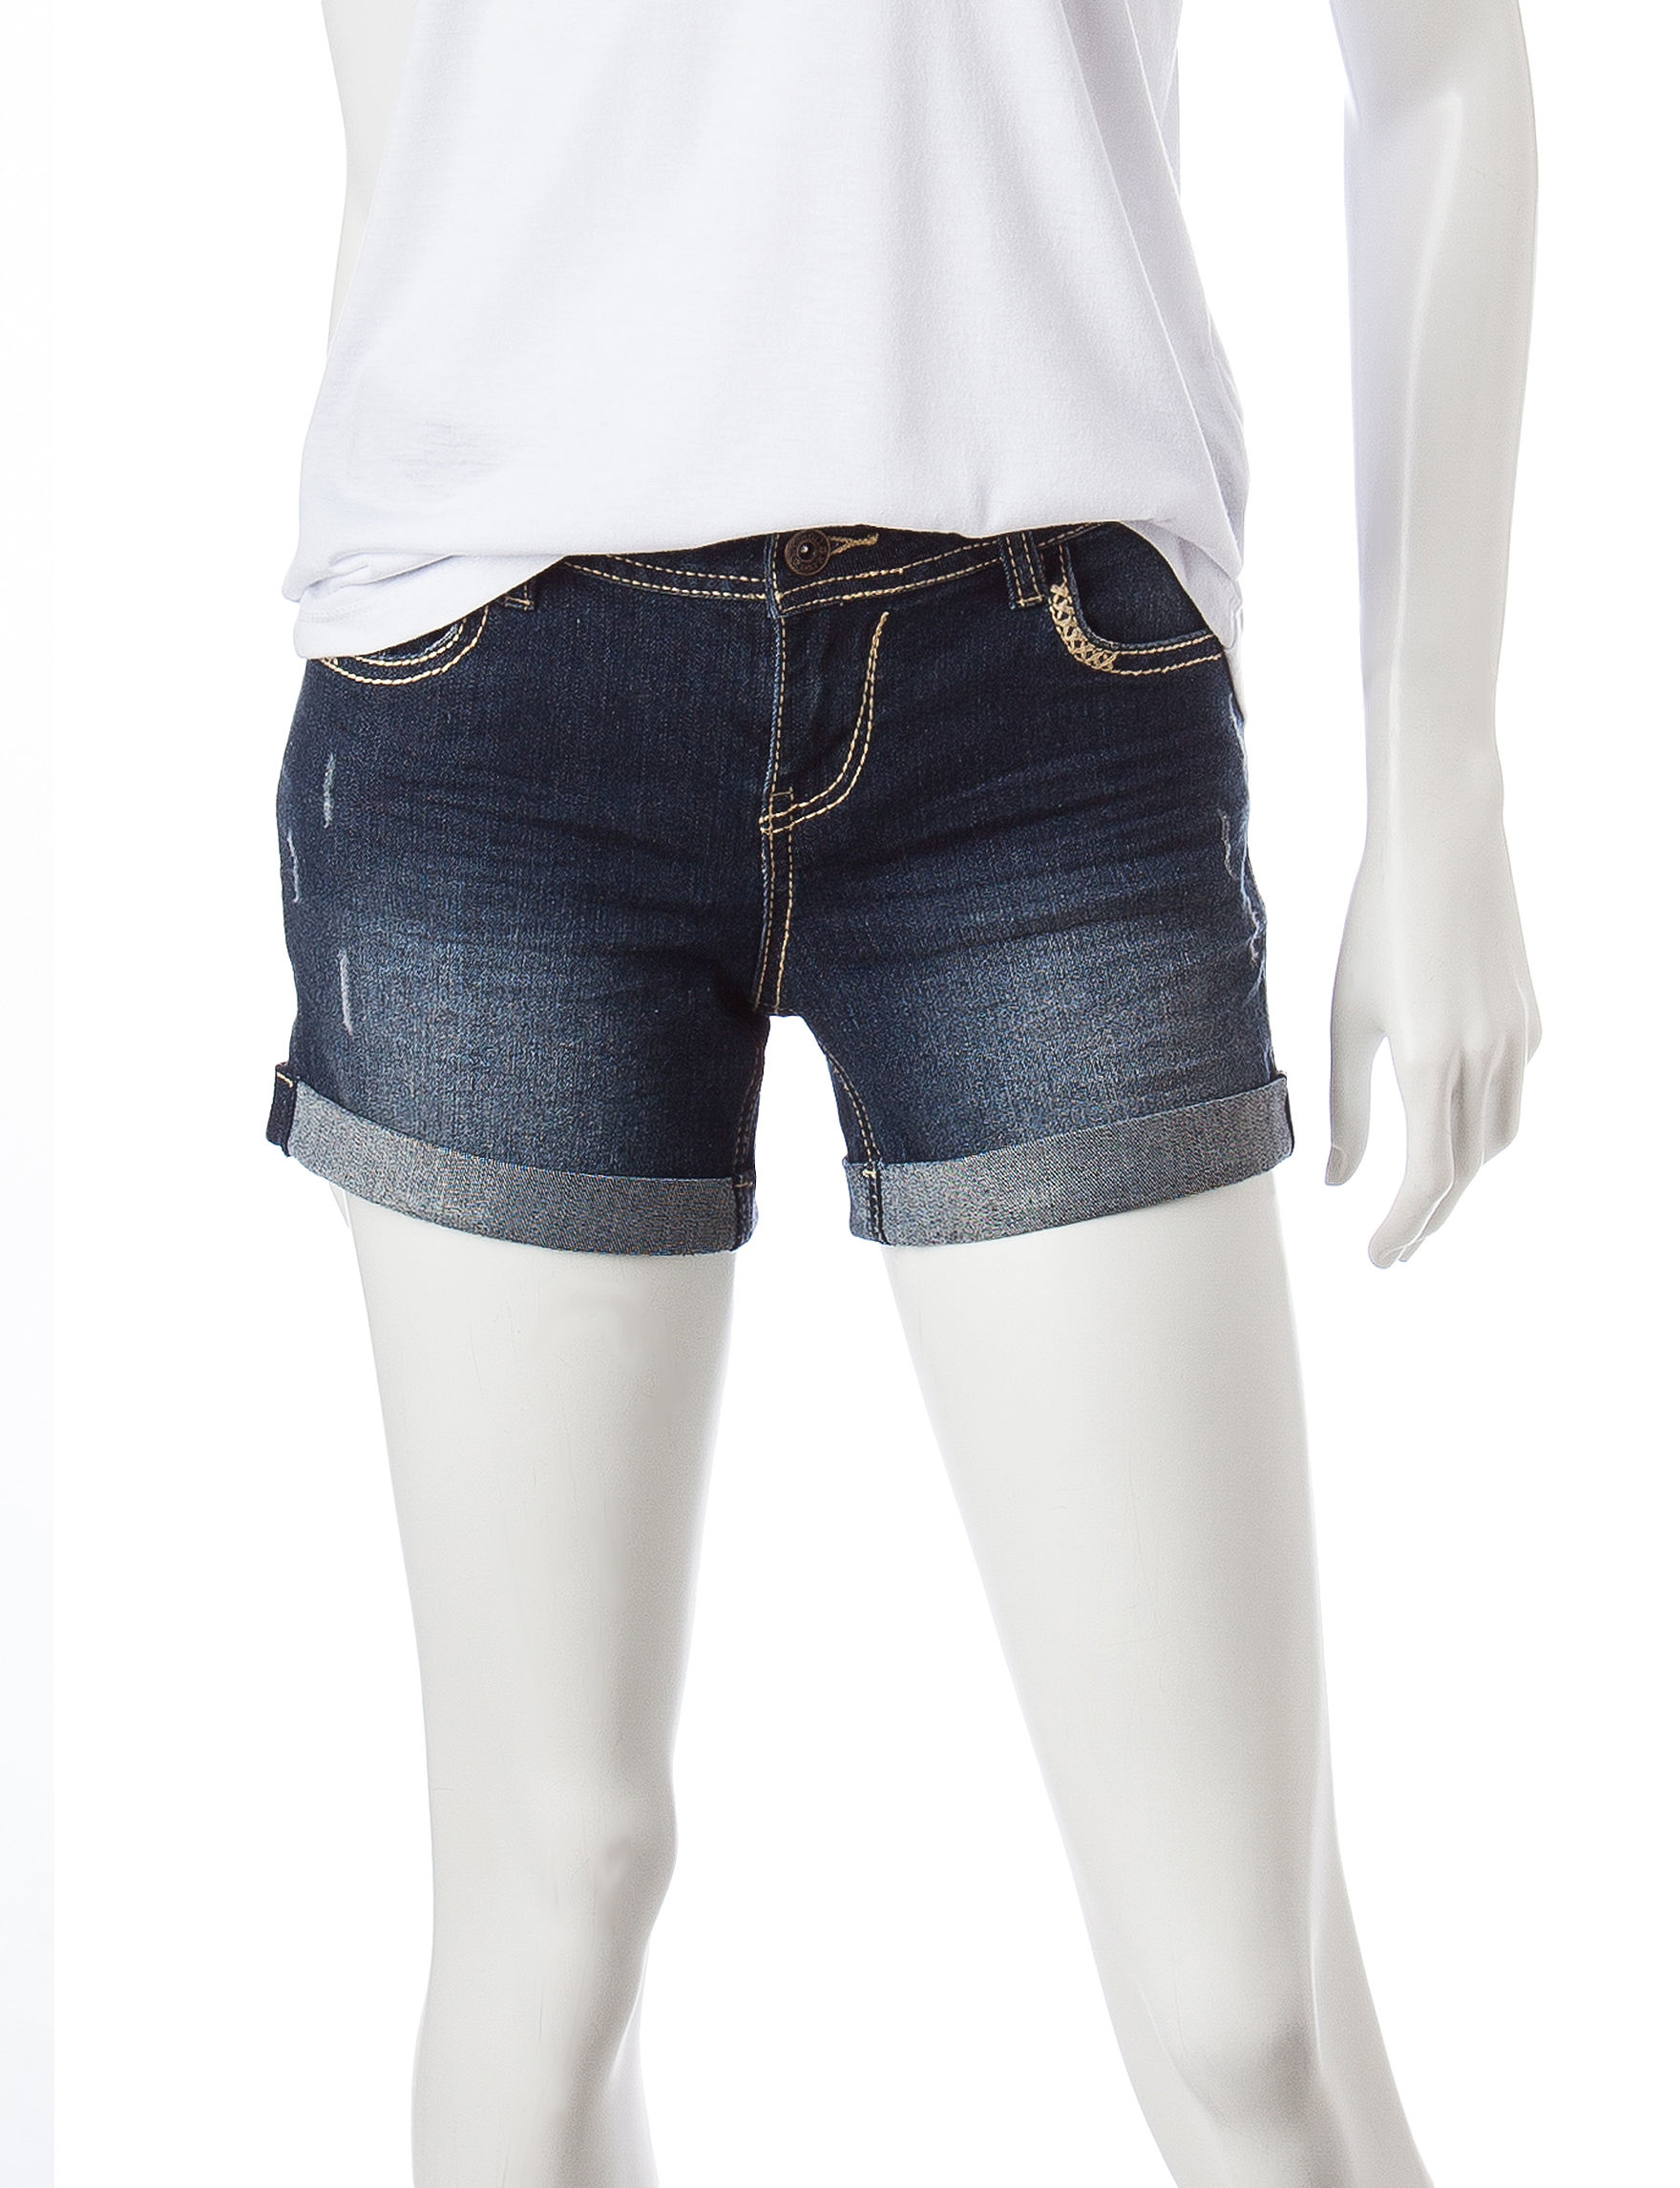 Wishful Park  Tailored Shorts